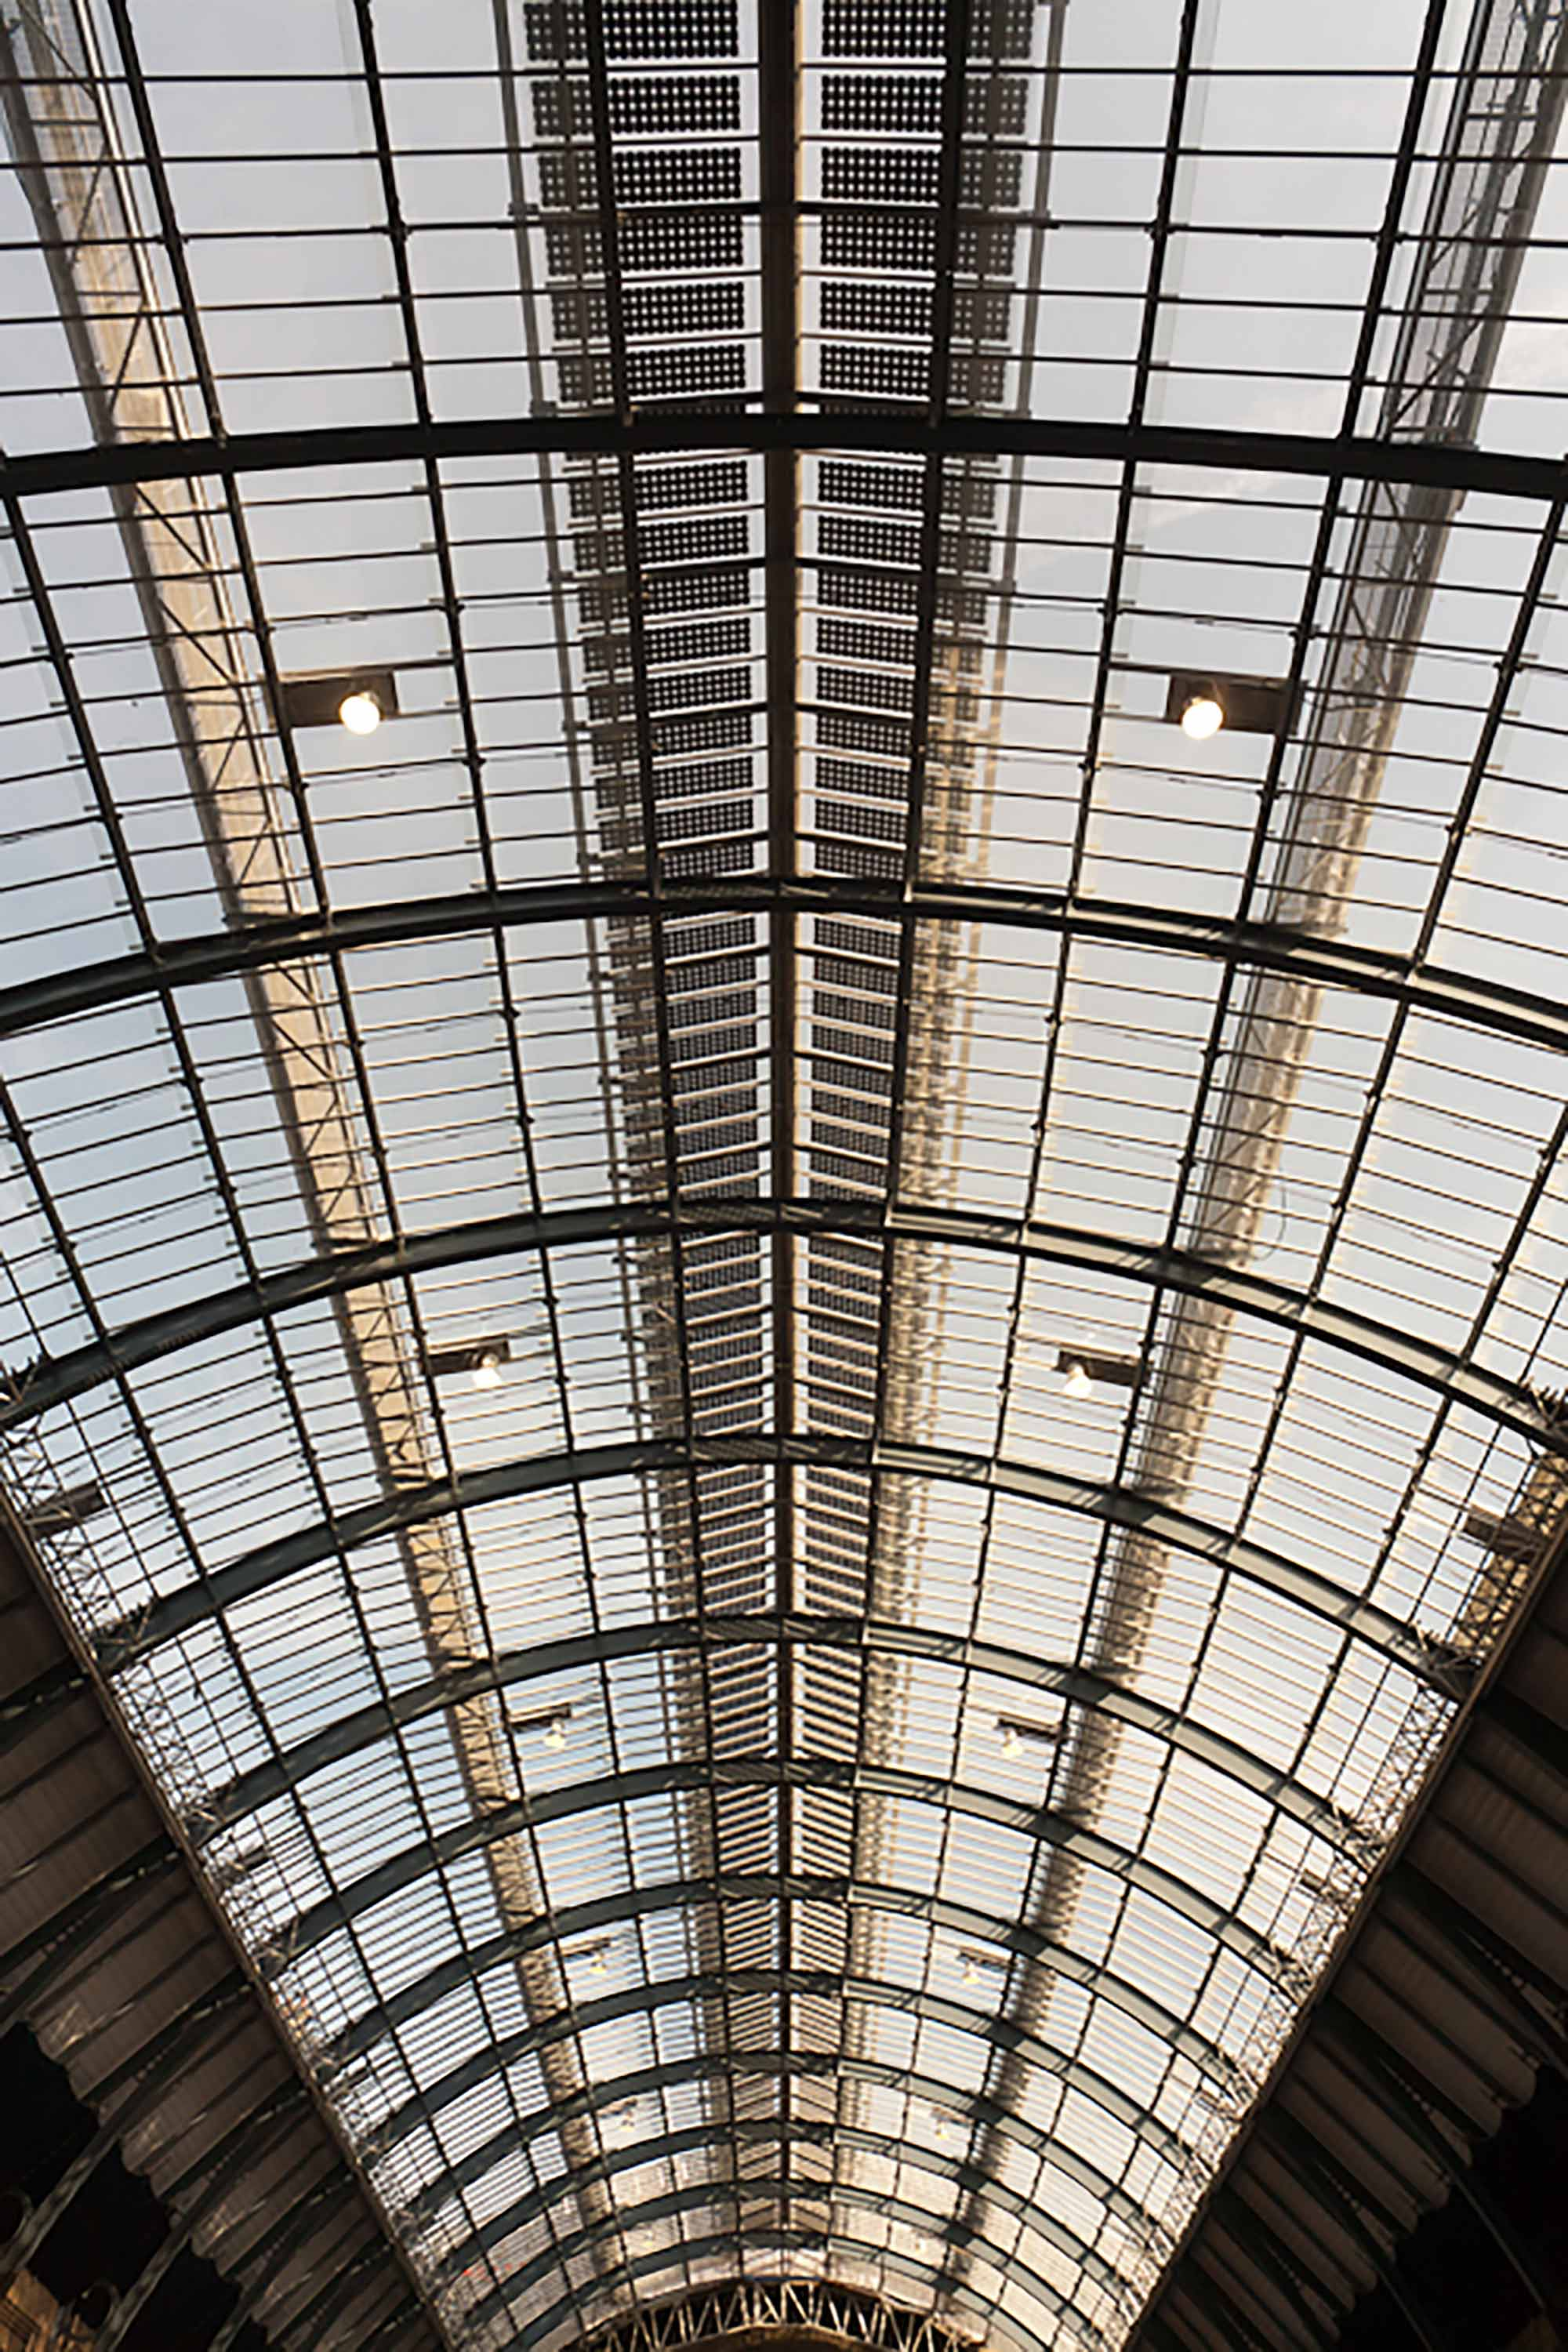 View-of-the-new-train-shed-roof-from-the-central-platforms.jpg